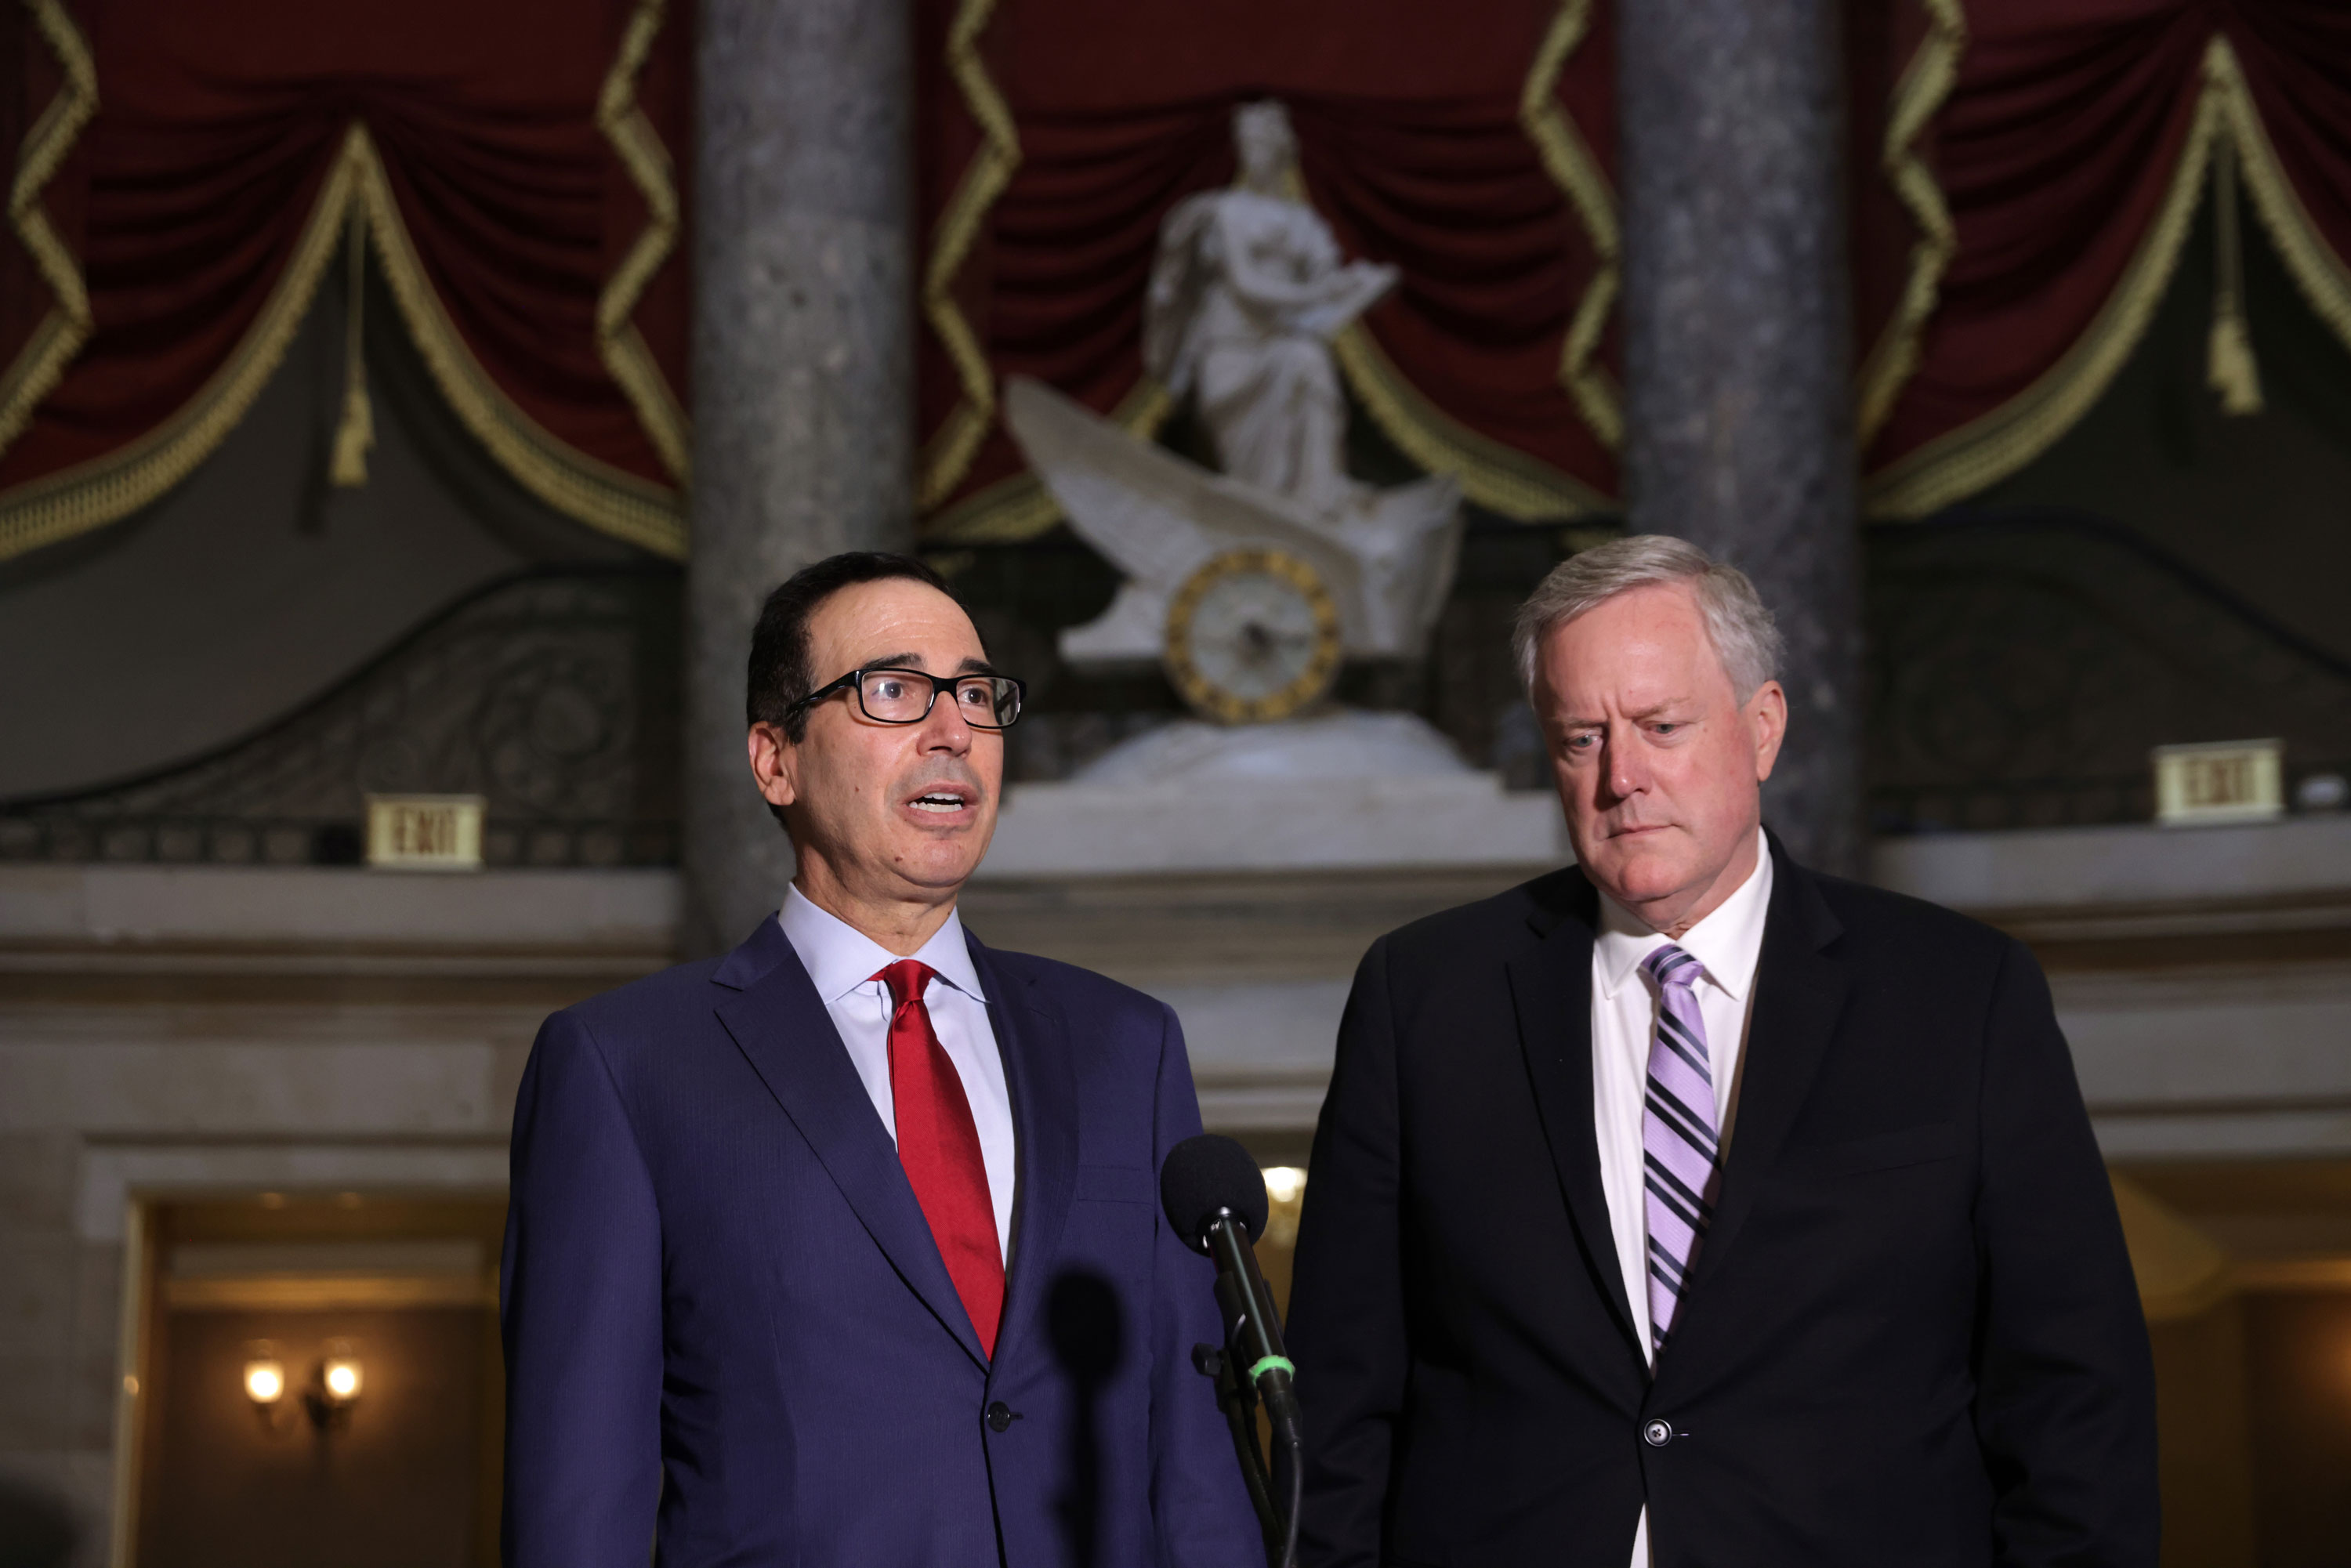 Treasury Secretary Steven Mnuchin, left, and White House chief of staff Mark Meadows speak to the press on August 7 at the Capitol in Washington, DC.